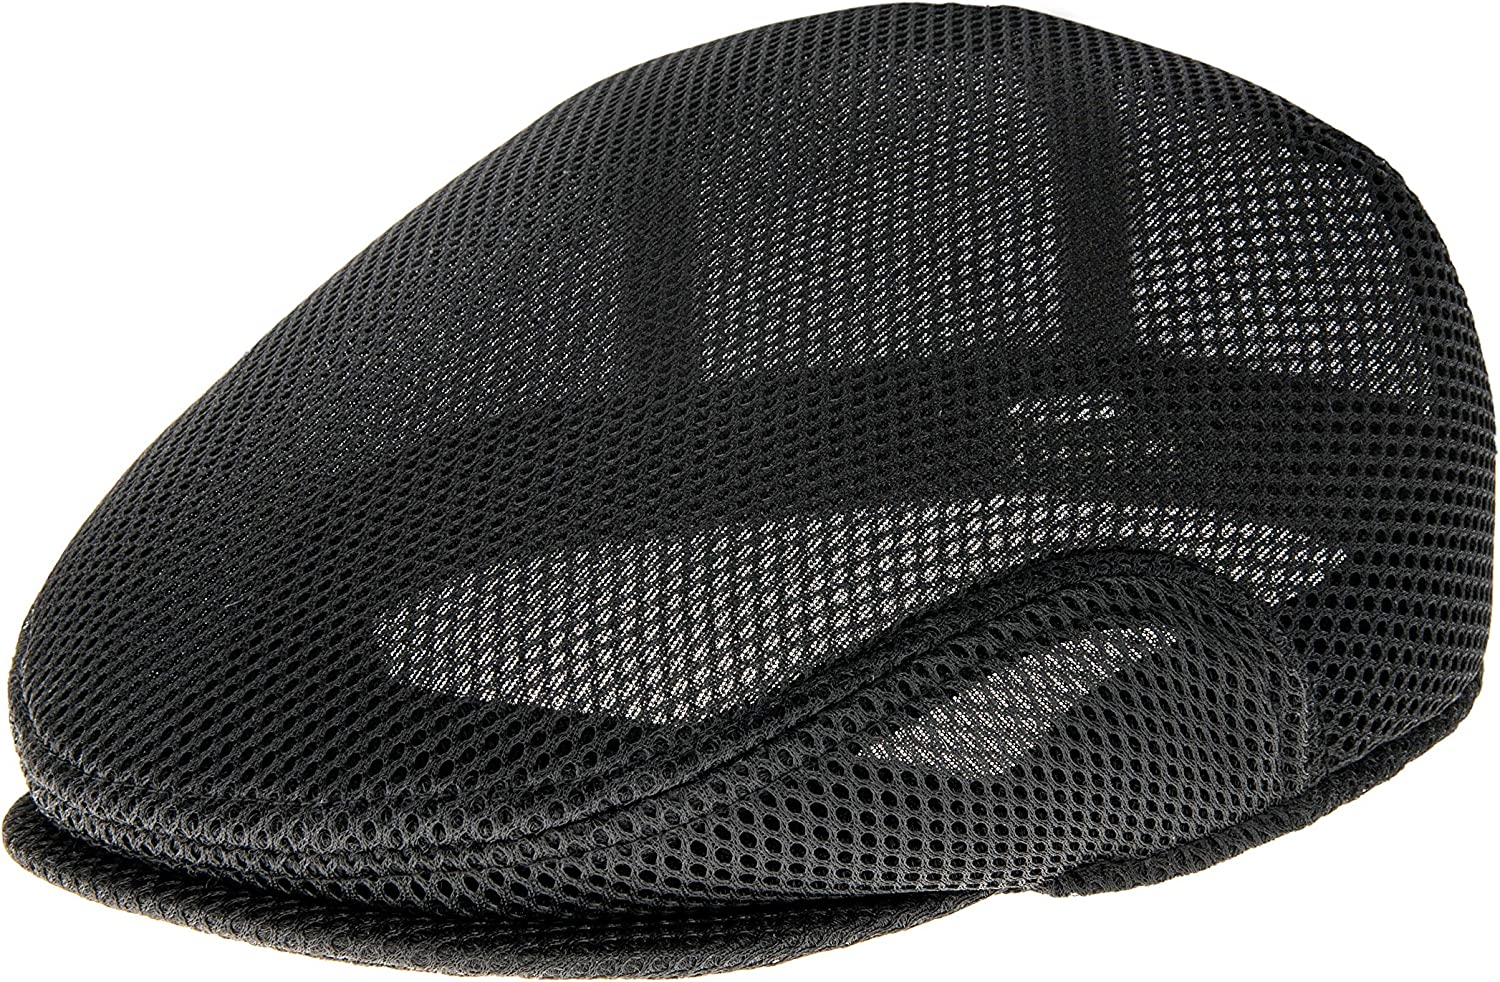 BOTVELA Men Breathable Mesh Summer Cap Irish Flat Cap Lightweight Newsboy Ivy Cap